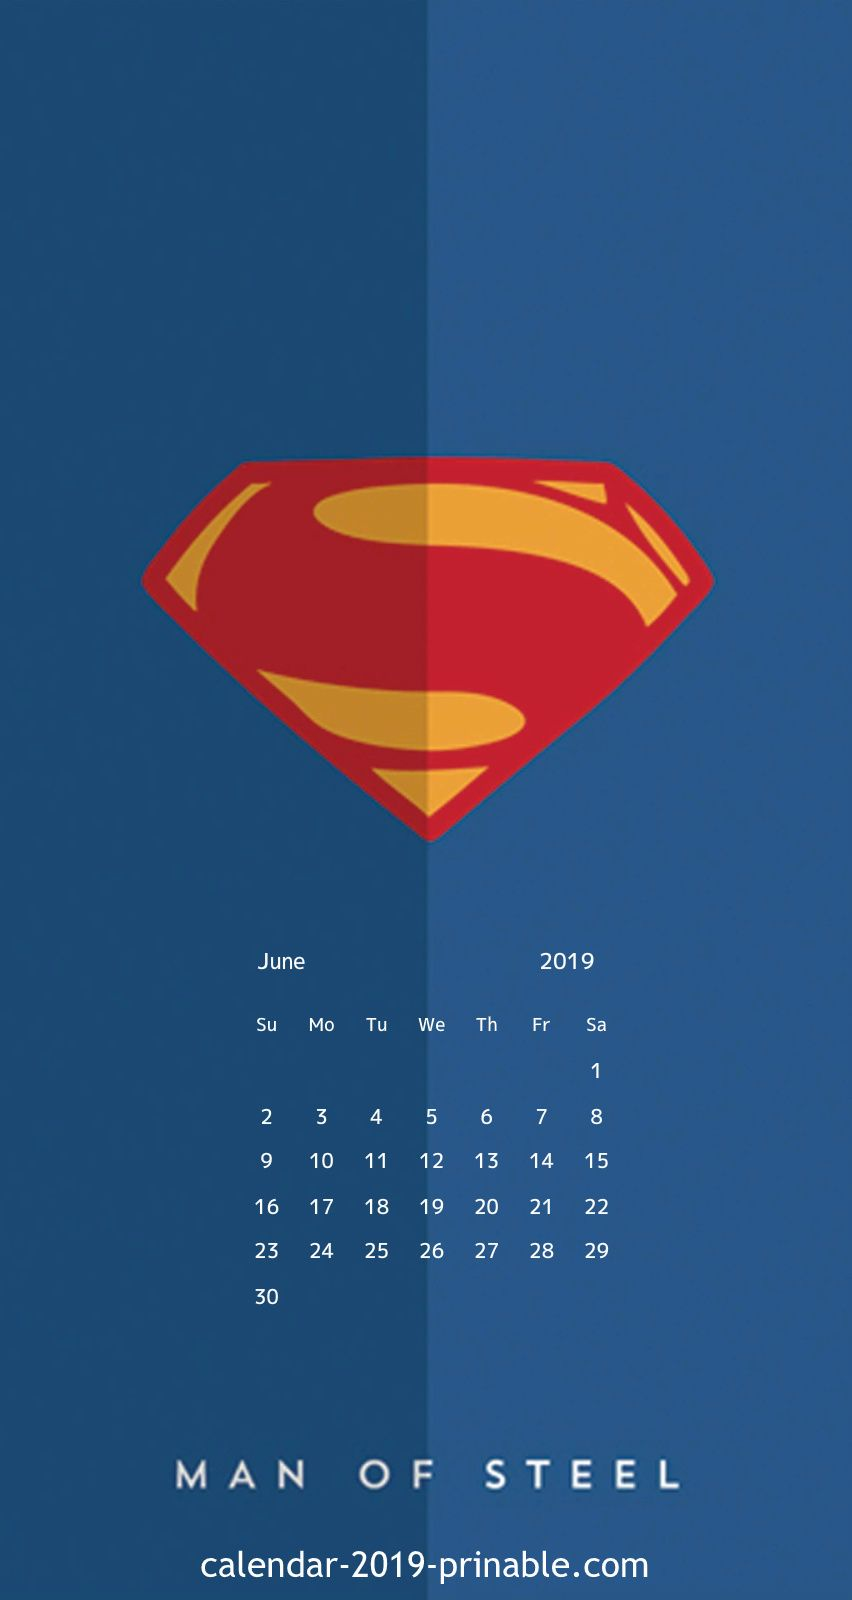 June 2019 iPhone Calendar